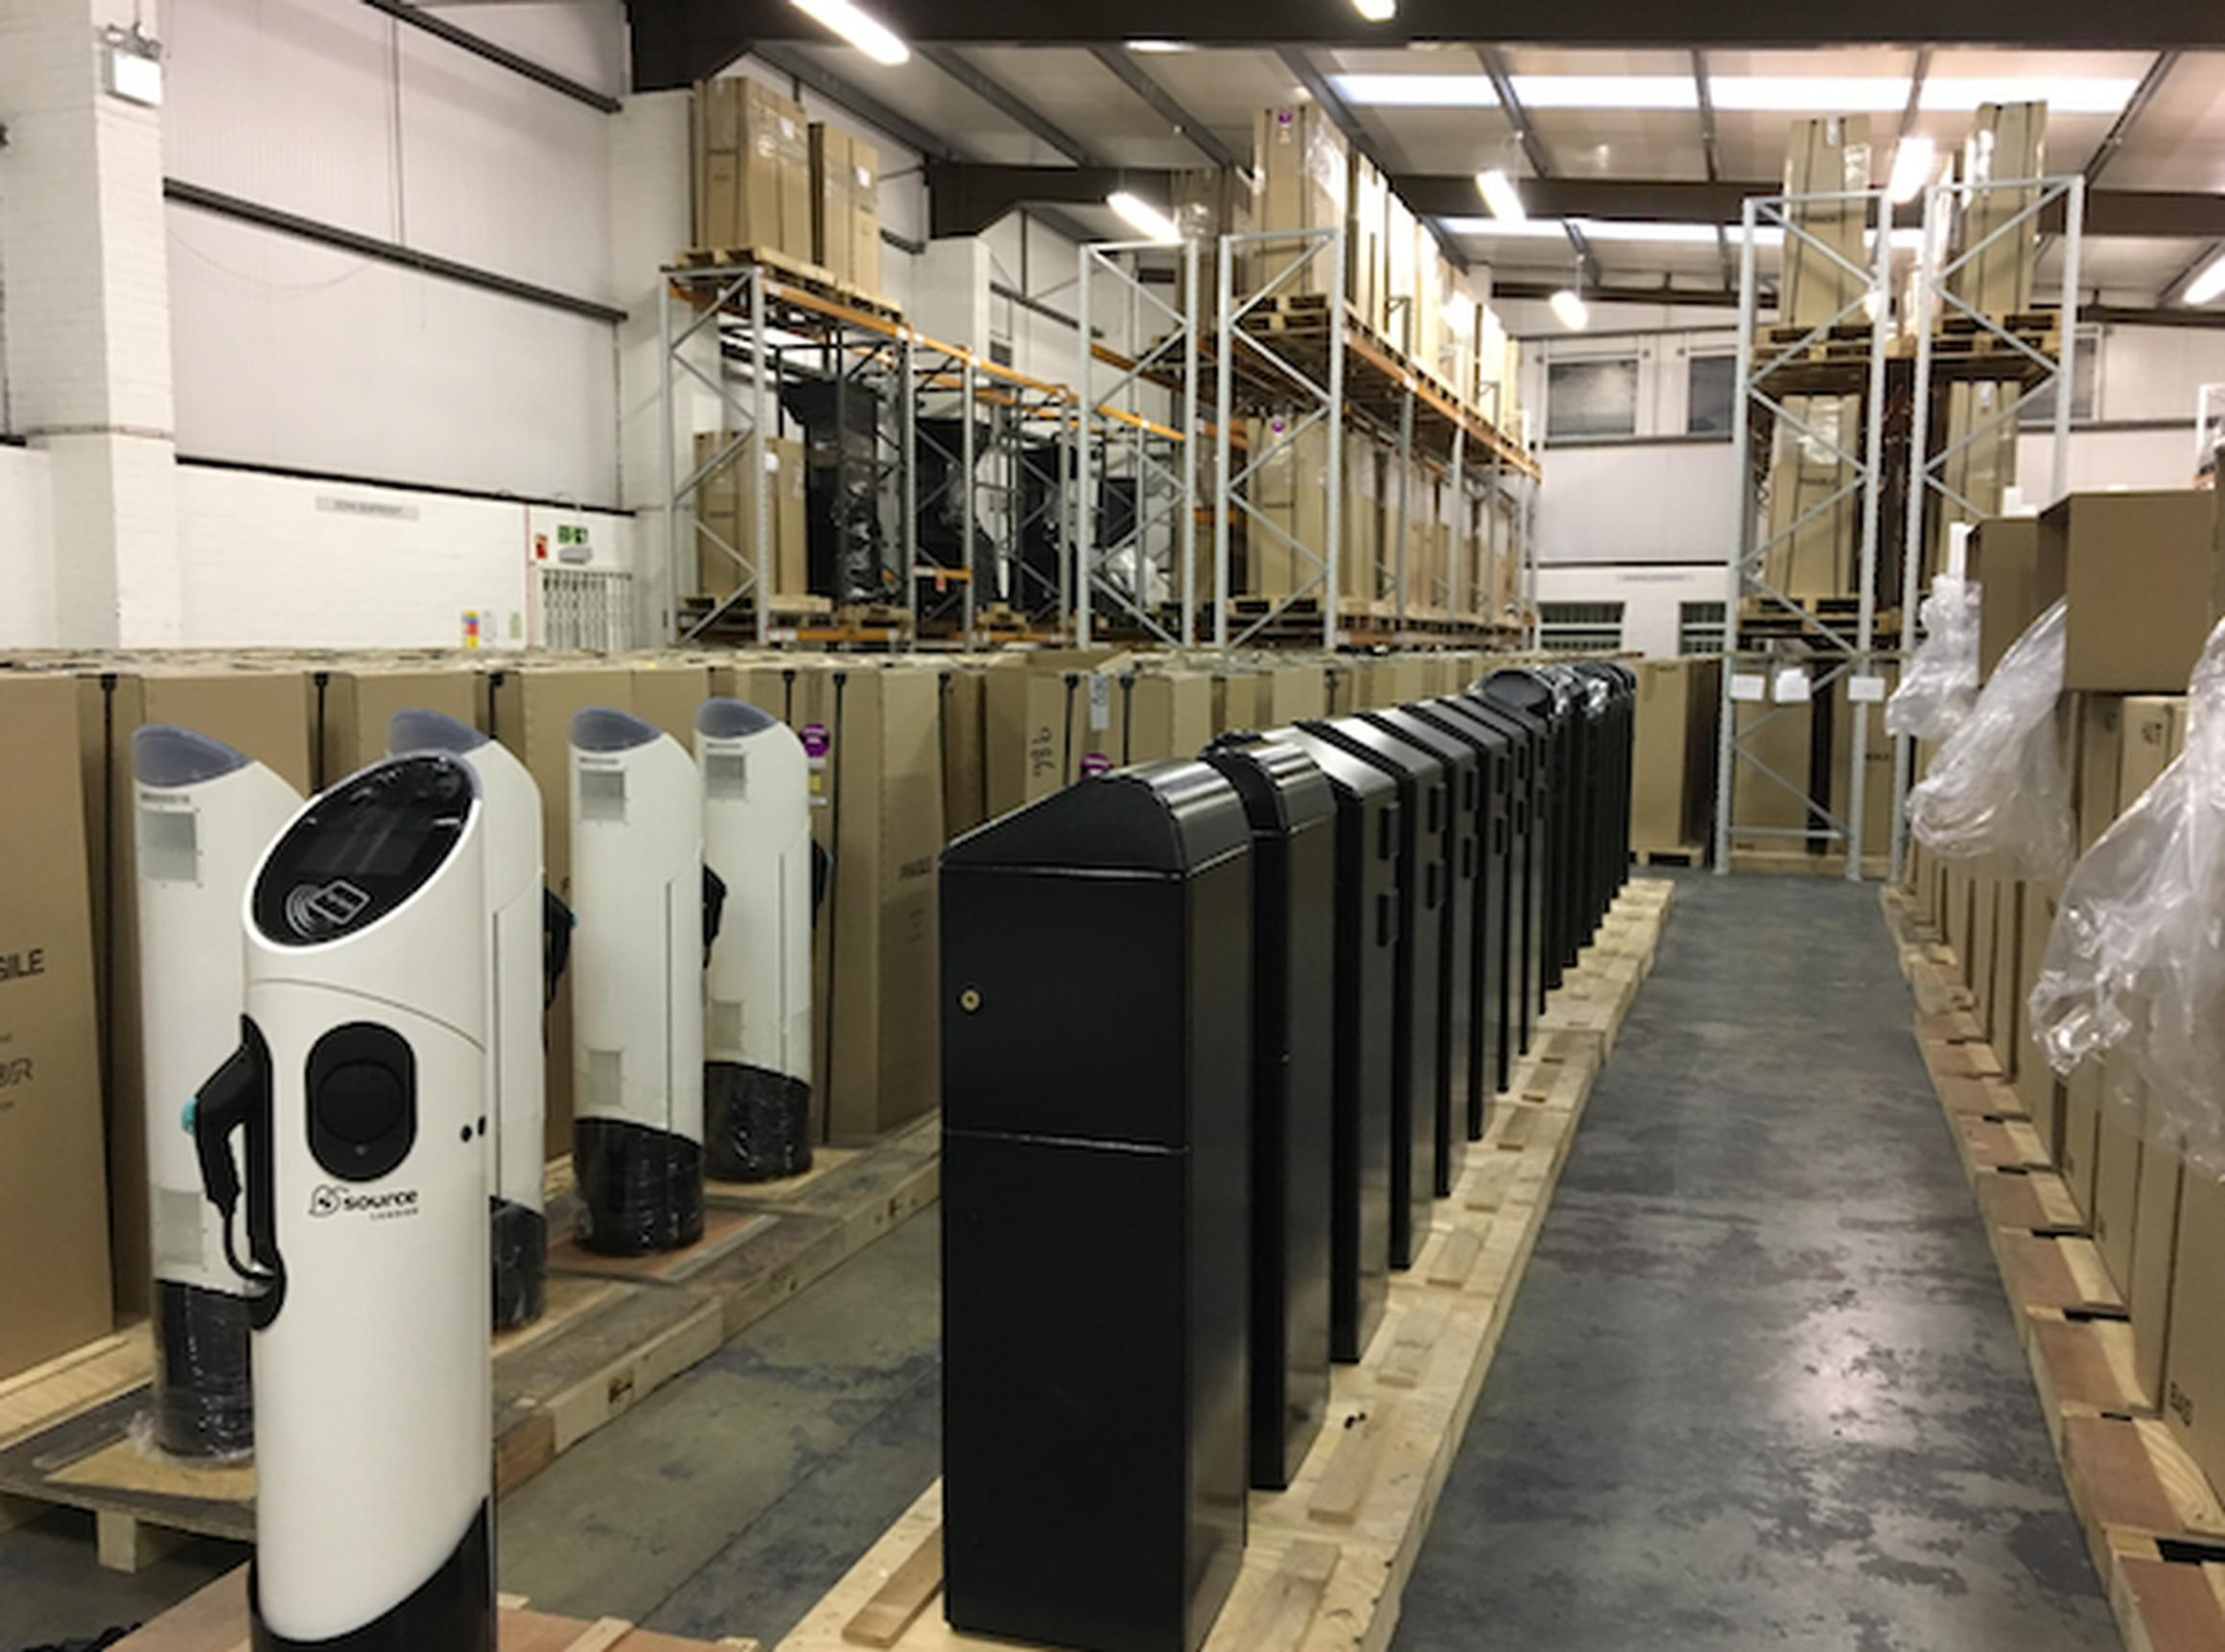 BluepointLondon has 1,000 charge points stored in a warehouse in Ealing awaiting deployment in the capital